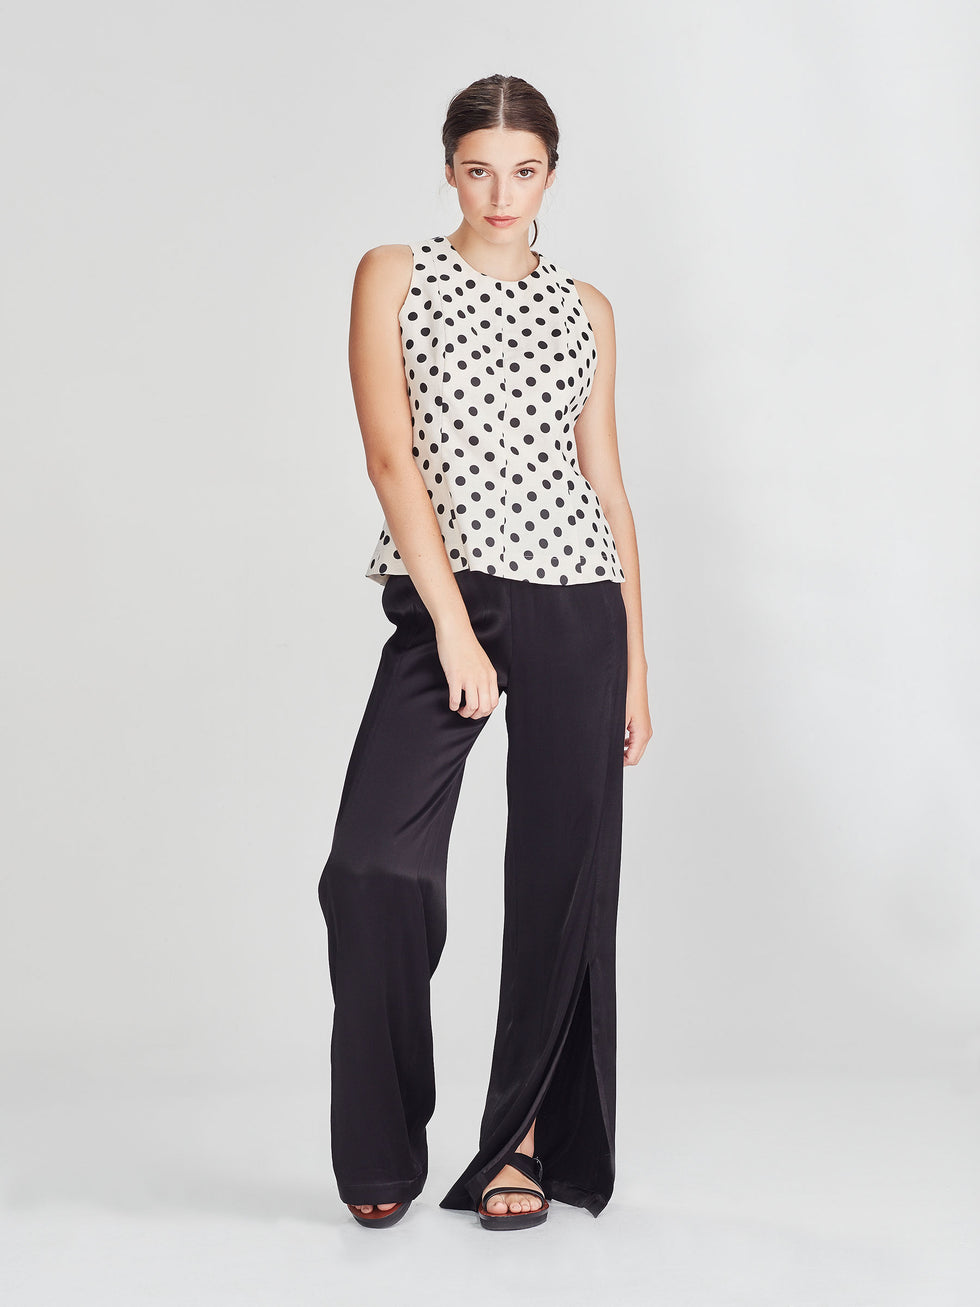 Dita Top (Polka Linen) Chalk/Black